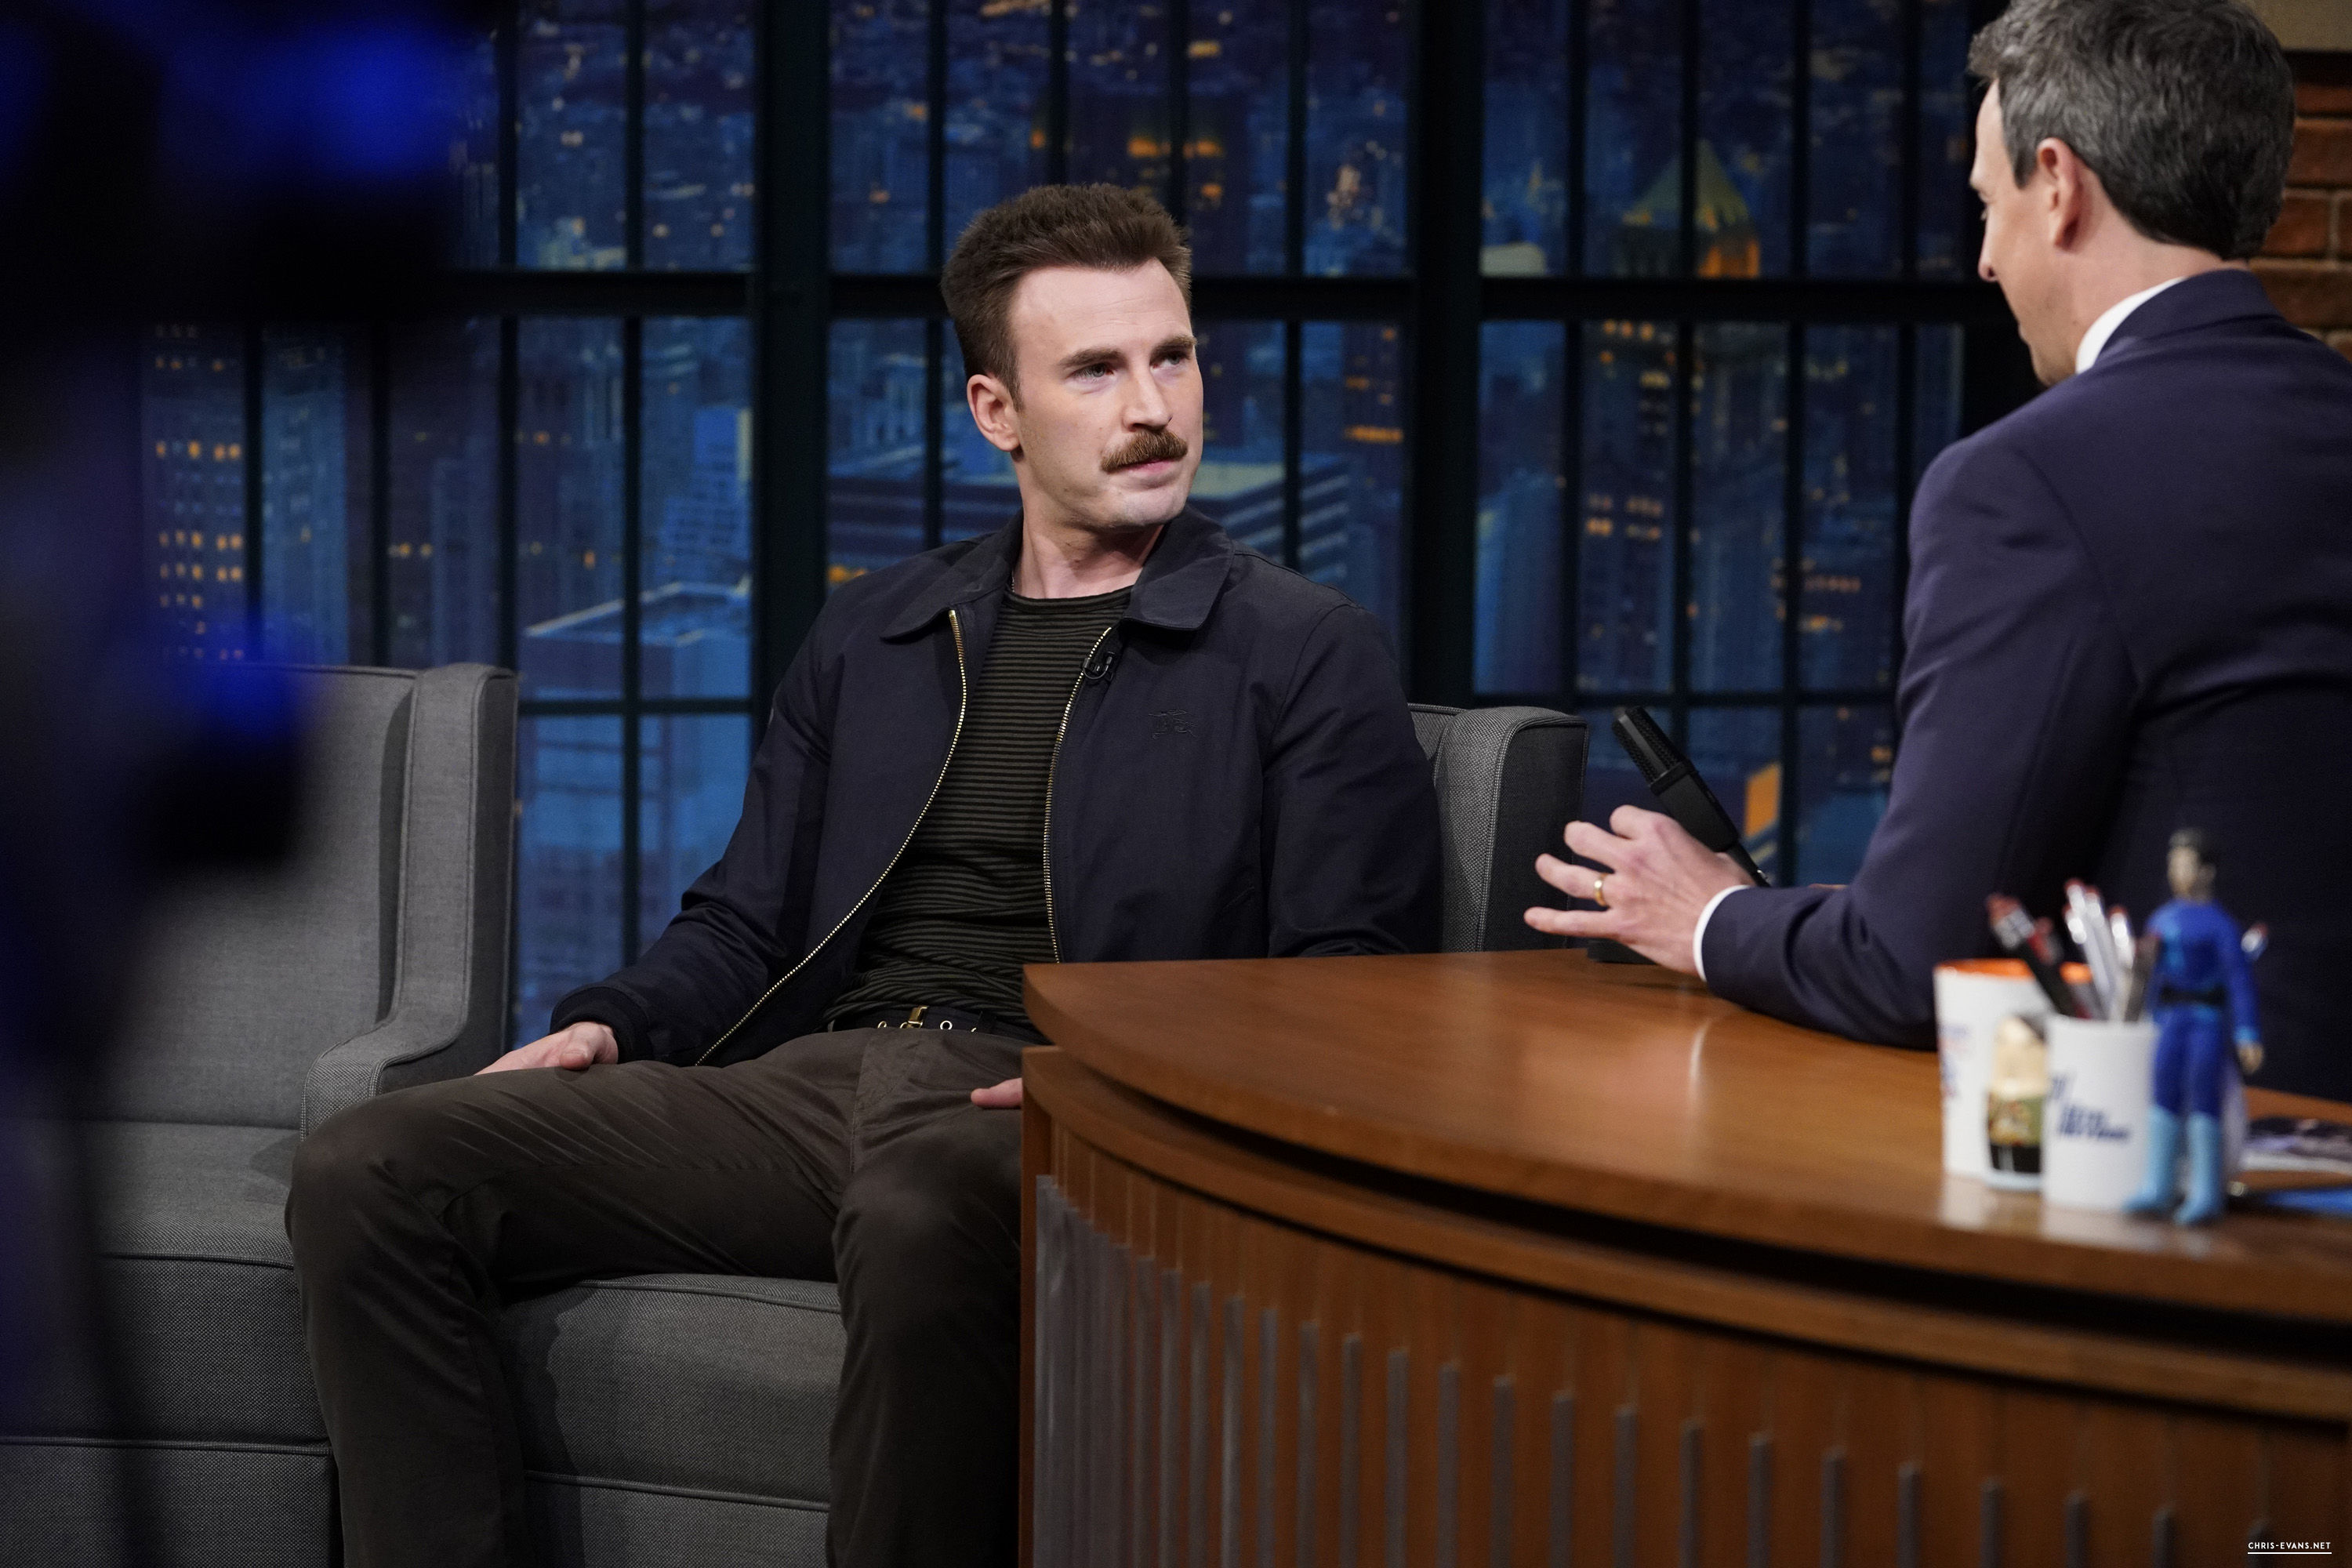 http://chris-evans.net/photos/albums/Appearances/2018/04%2023%20Late%20Night%20with%20Seth%20Meyers/004.jpg